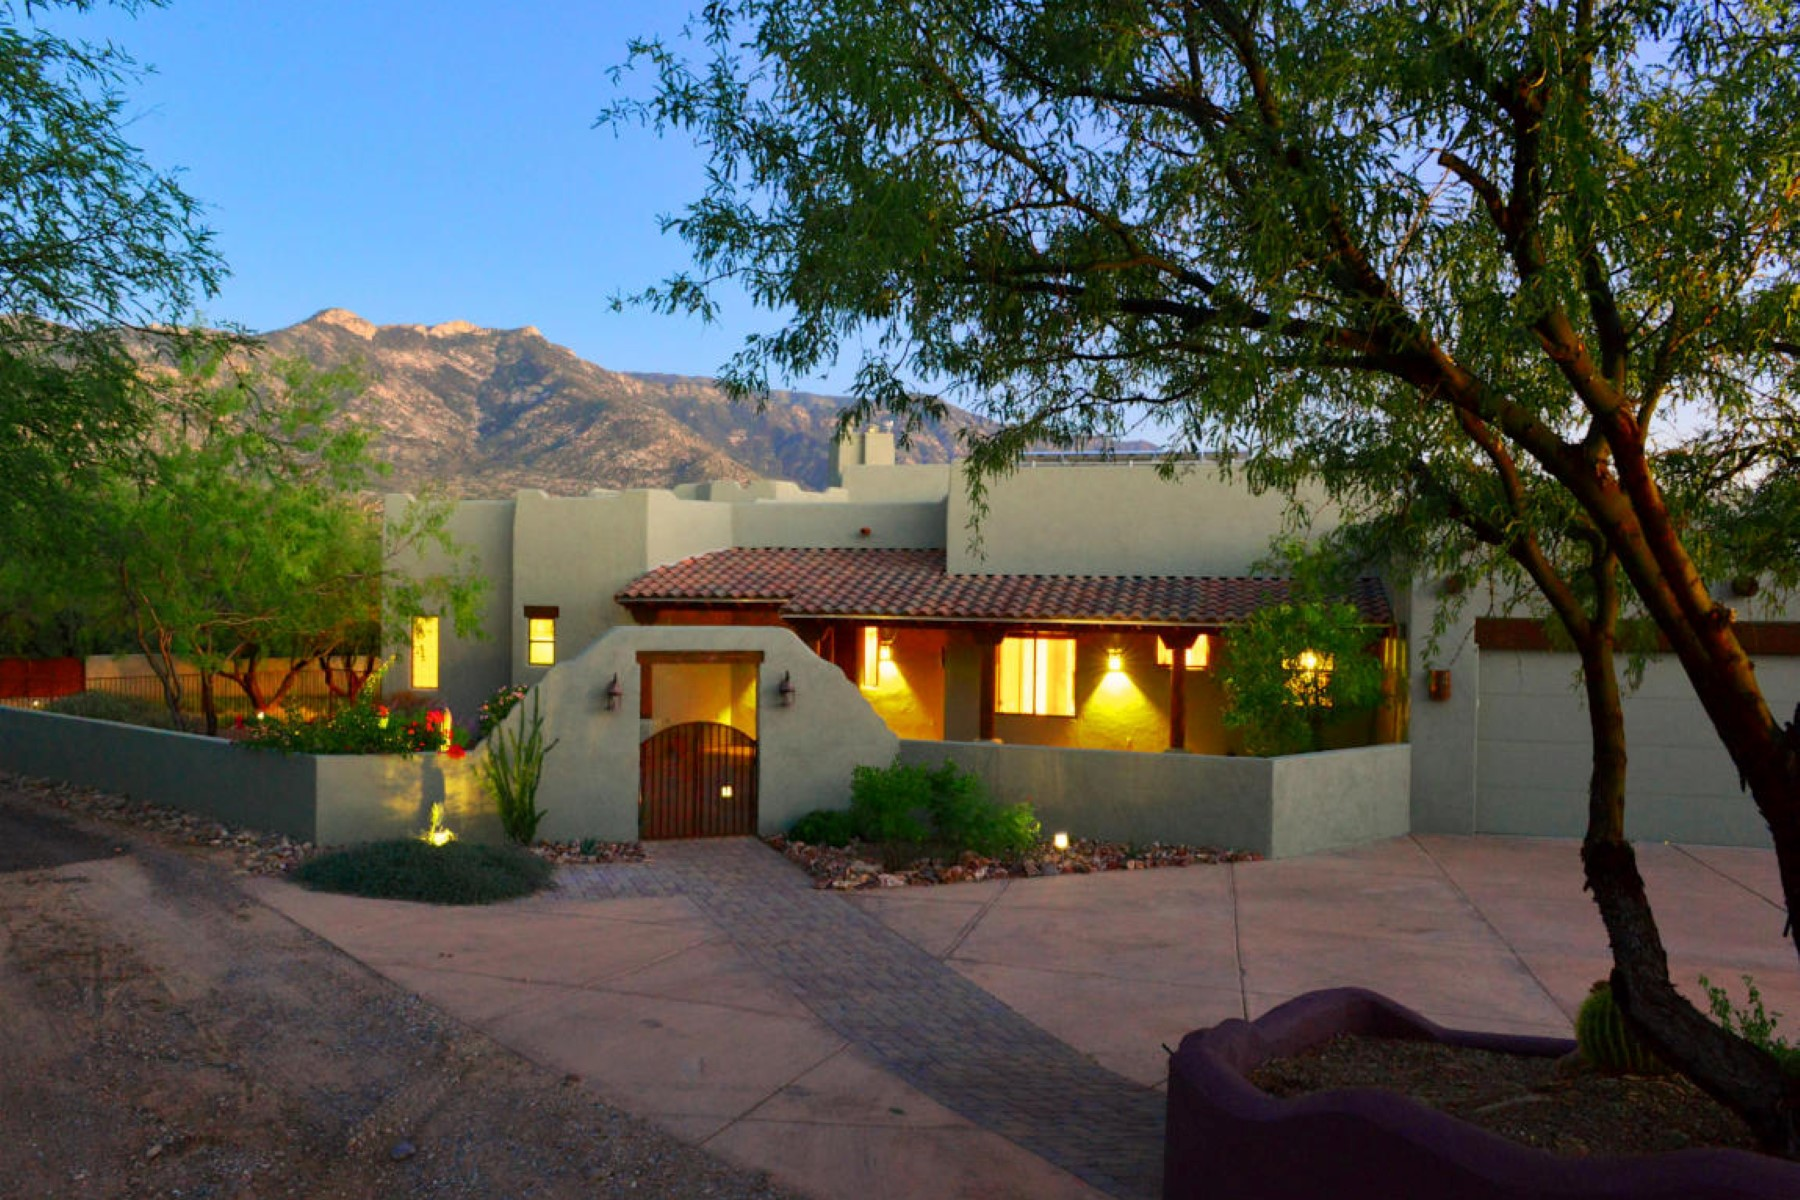 Villa per Vendita alle ore Beautiful home with spectacular views 5350 E Edwin Road Tucson, Arizona, 85739 Stati Uniti